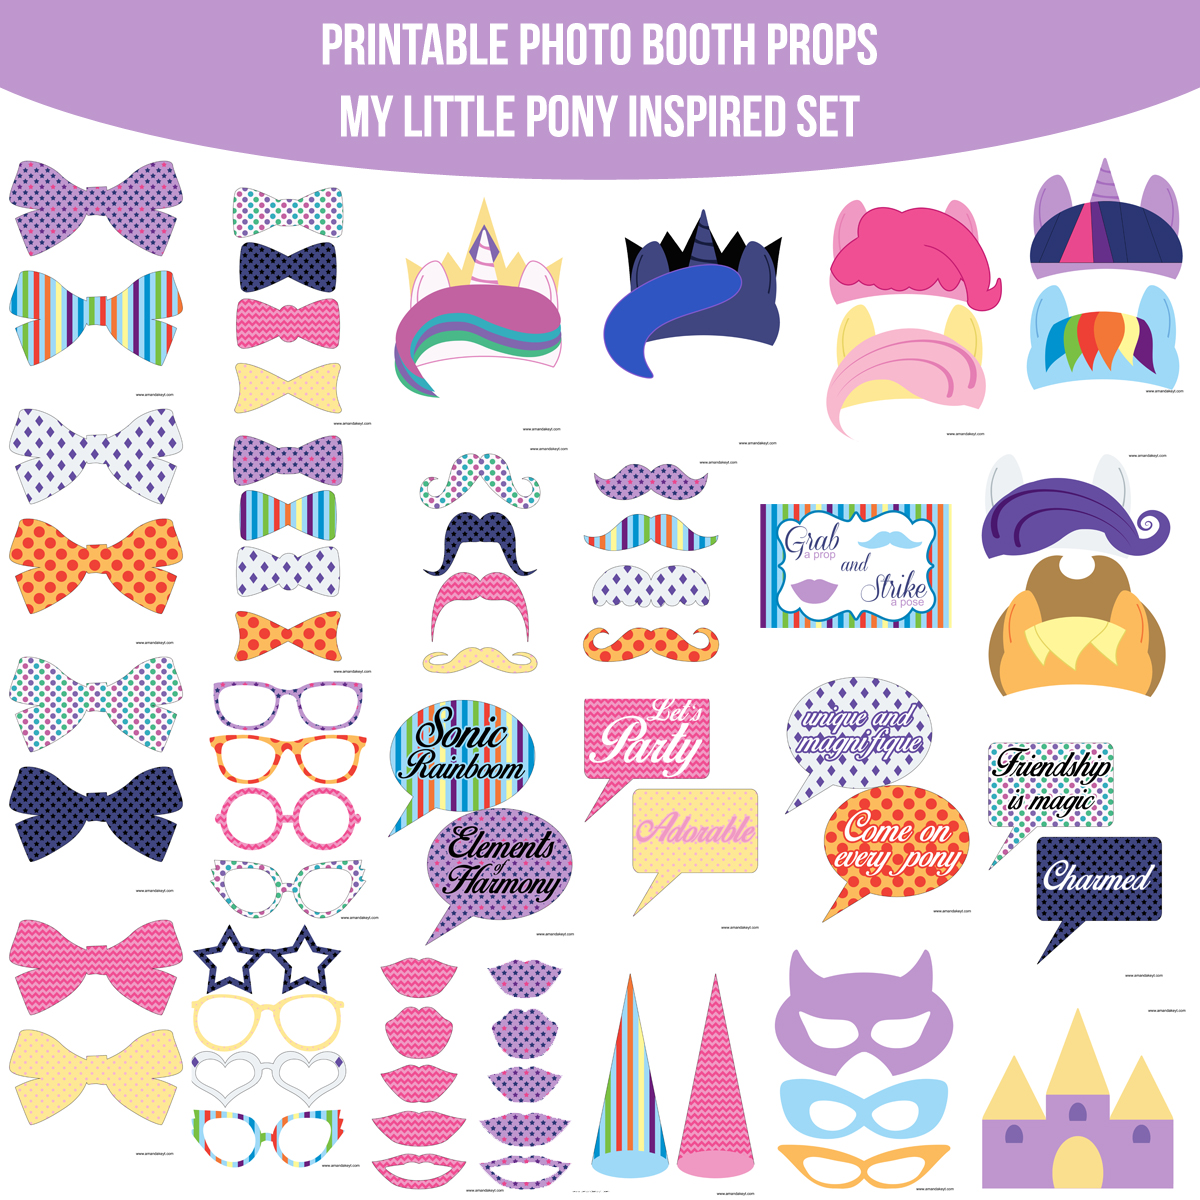 picture relating to Disney Princess Photo Booth Props Free Printable referred to as Publications Videos Television Amanda Keyt Printable Models